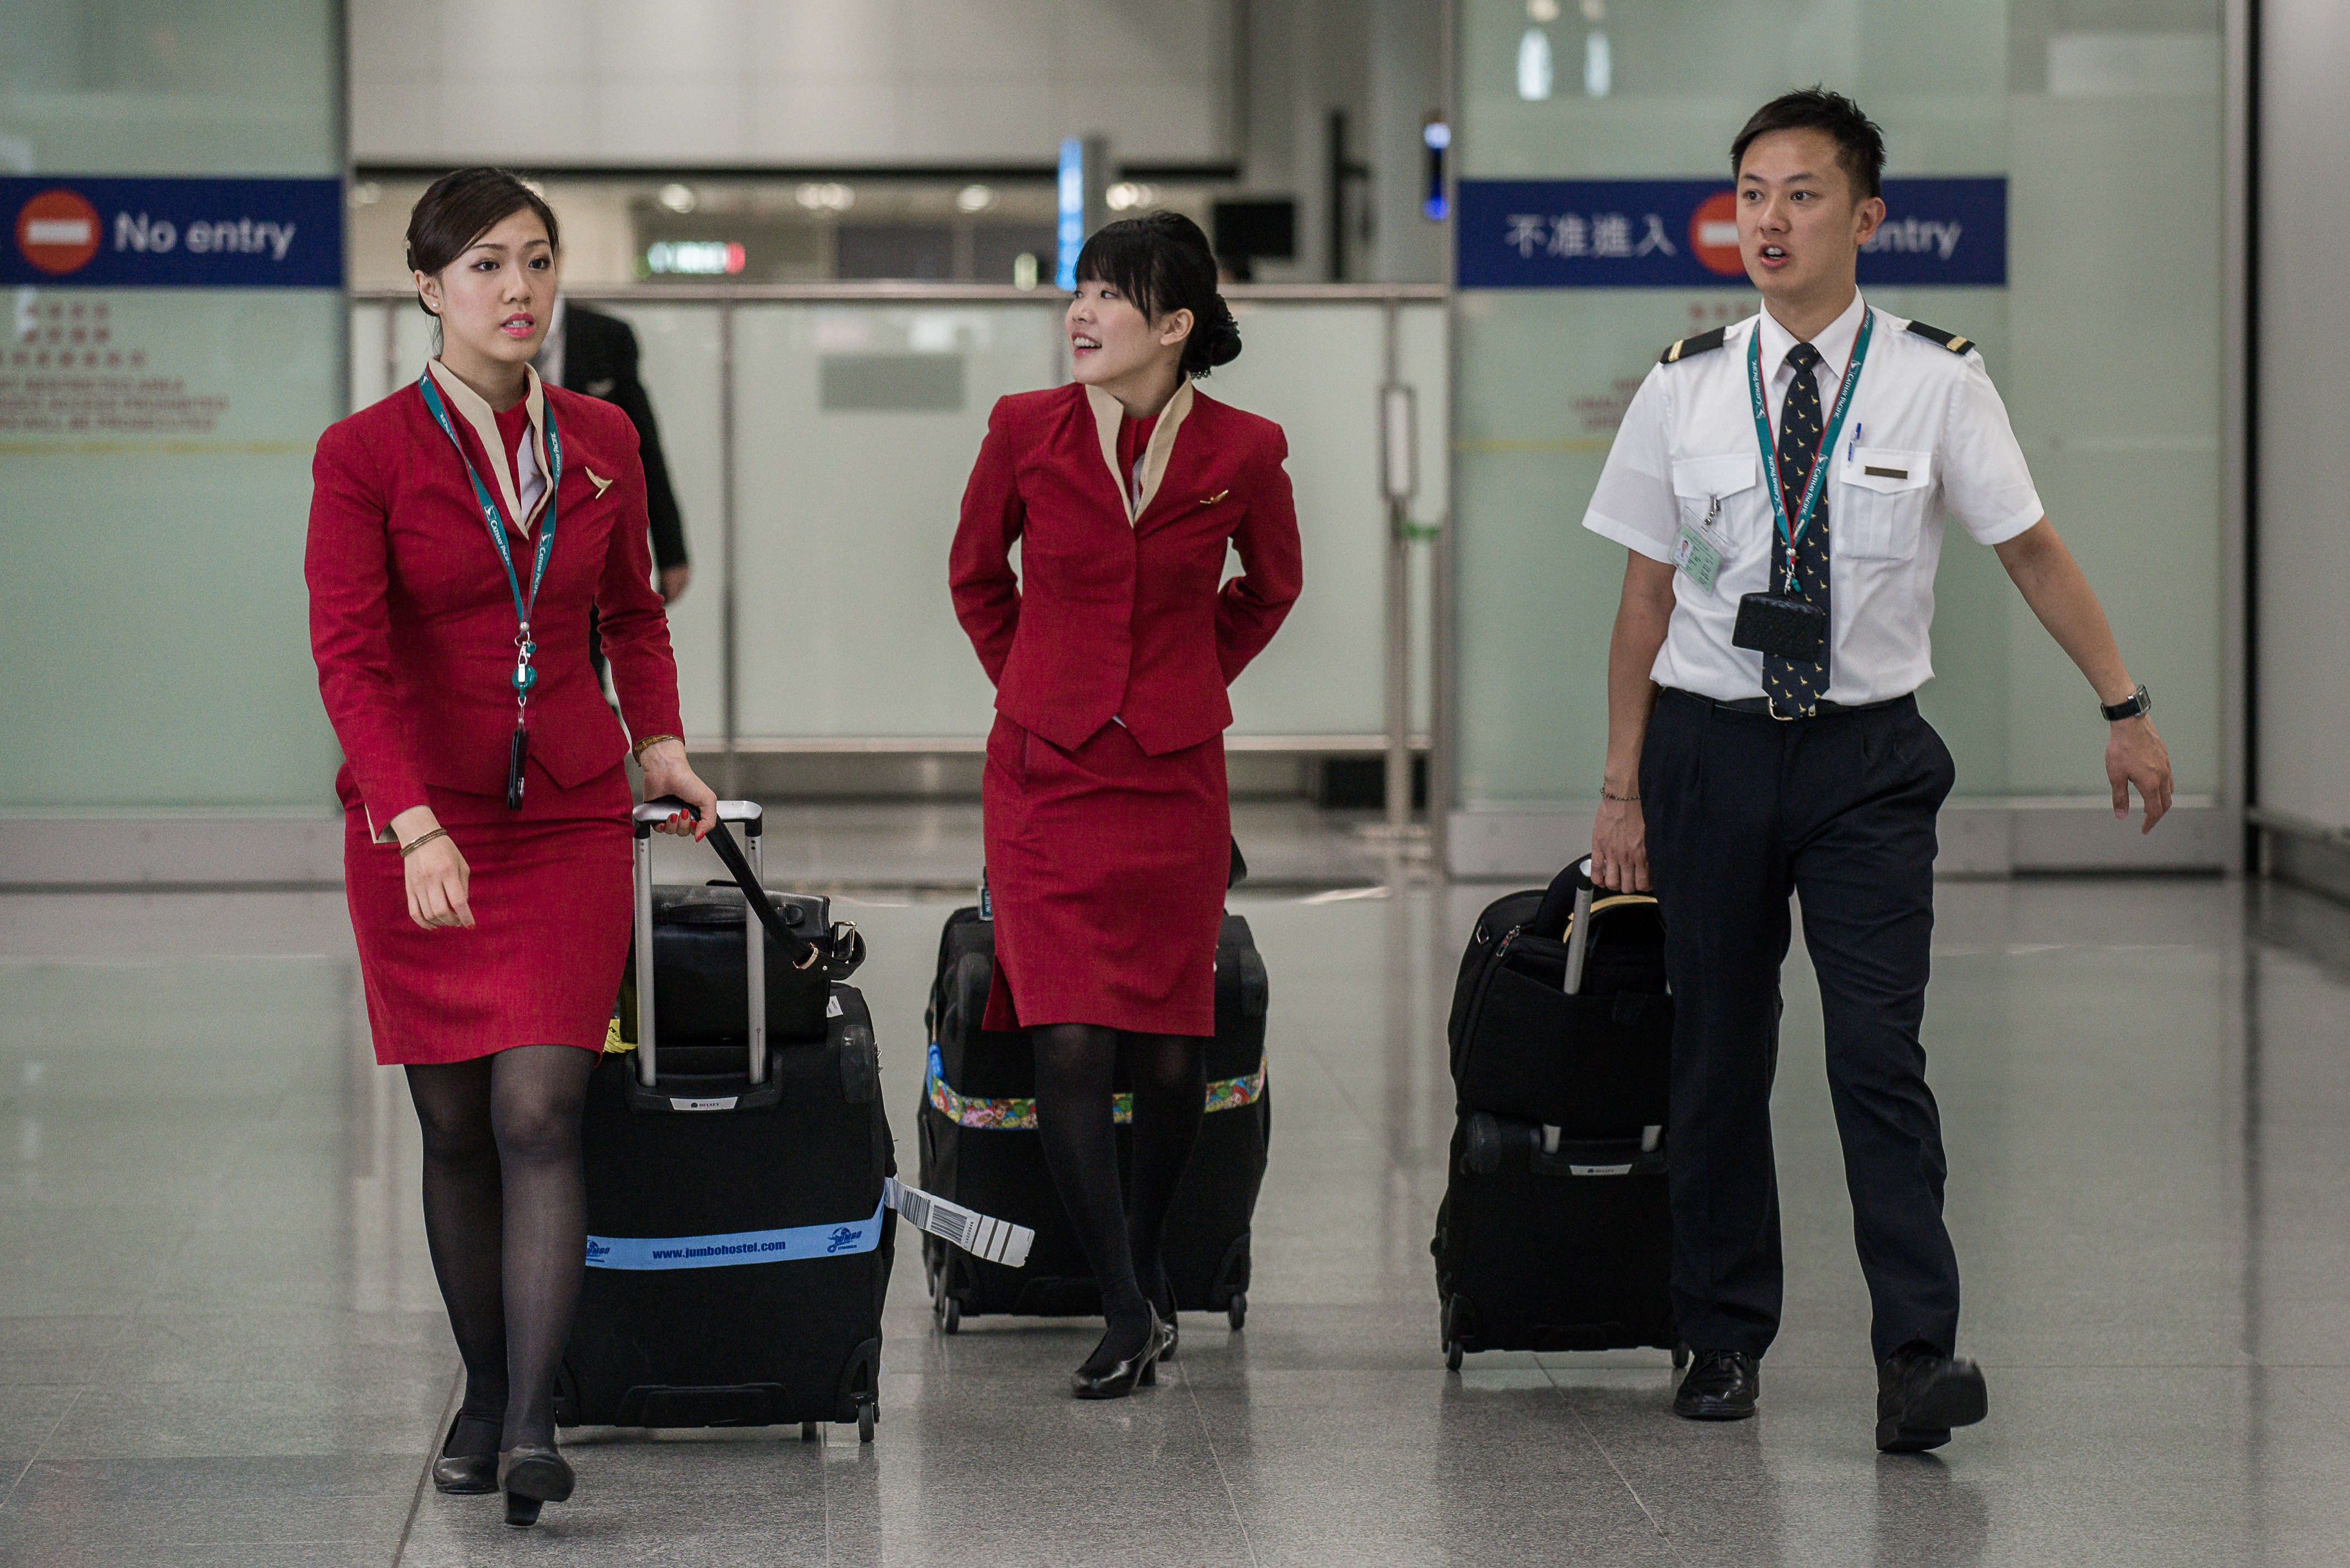 Flight attendants for Cathay Pacific arrive at the international airport in Hong Kong on May 5, 2014.